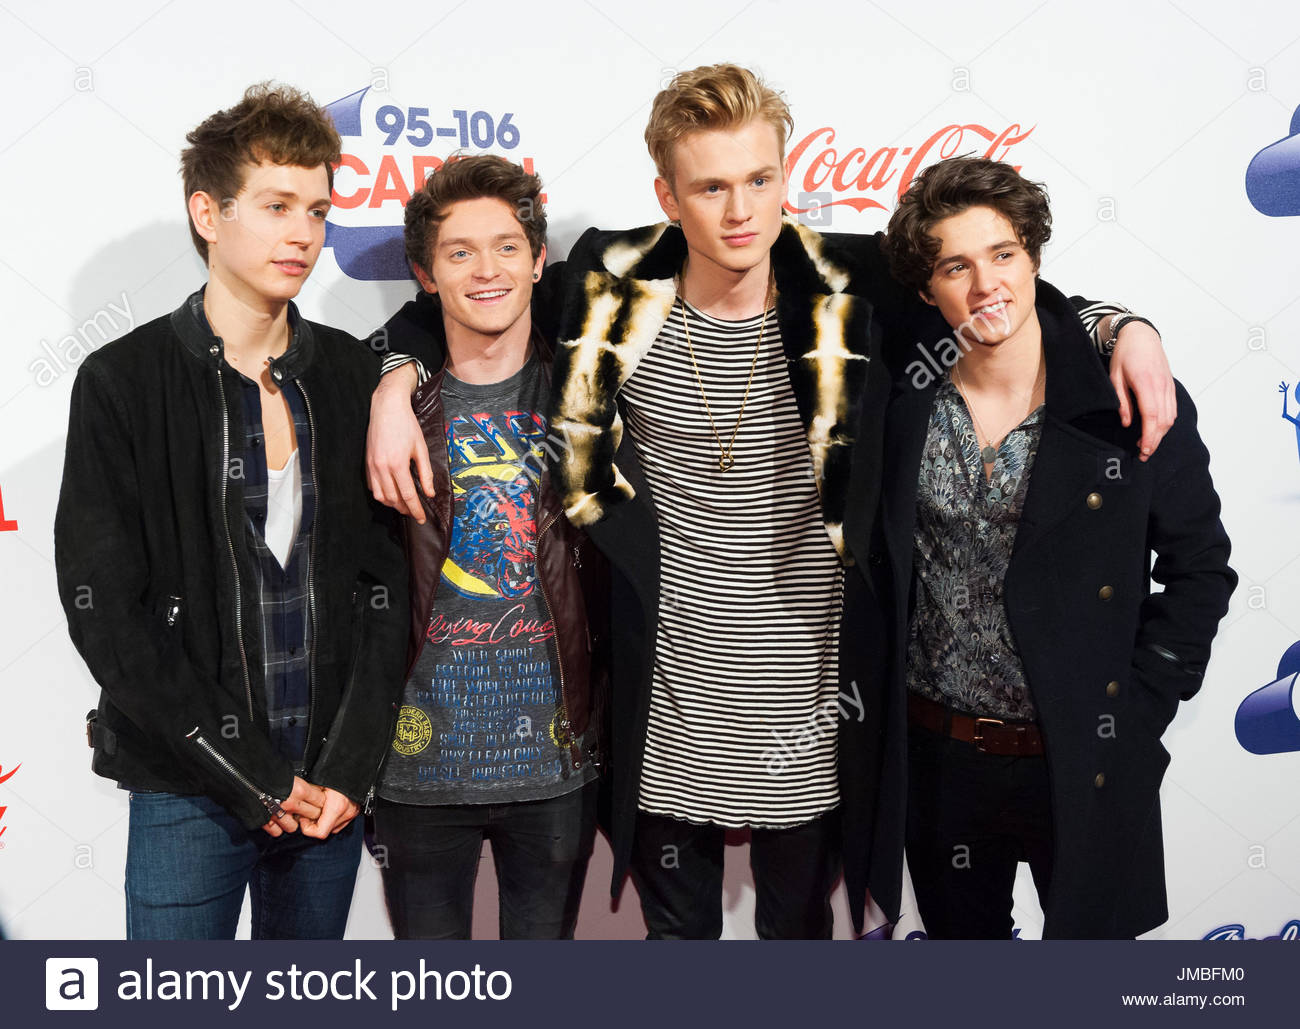 The Vamps And James Mcvey And Bradley Simpson And Tristan Evans And